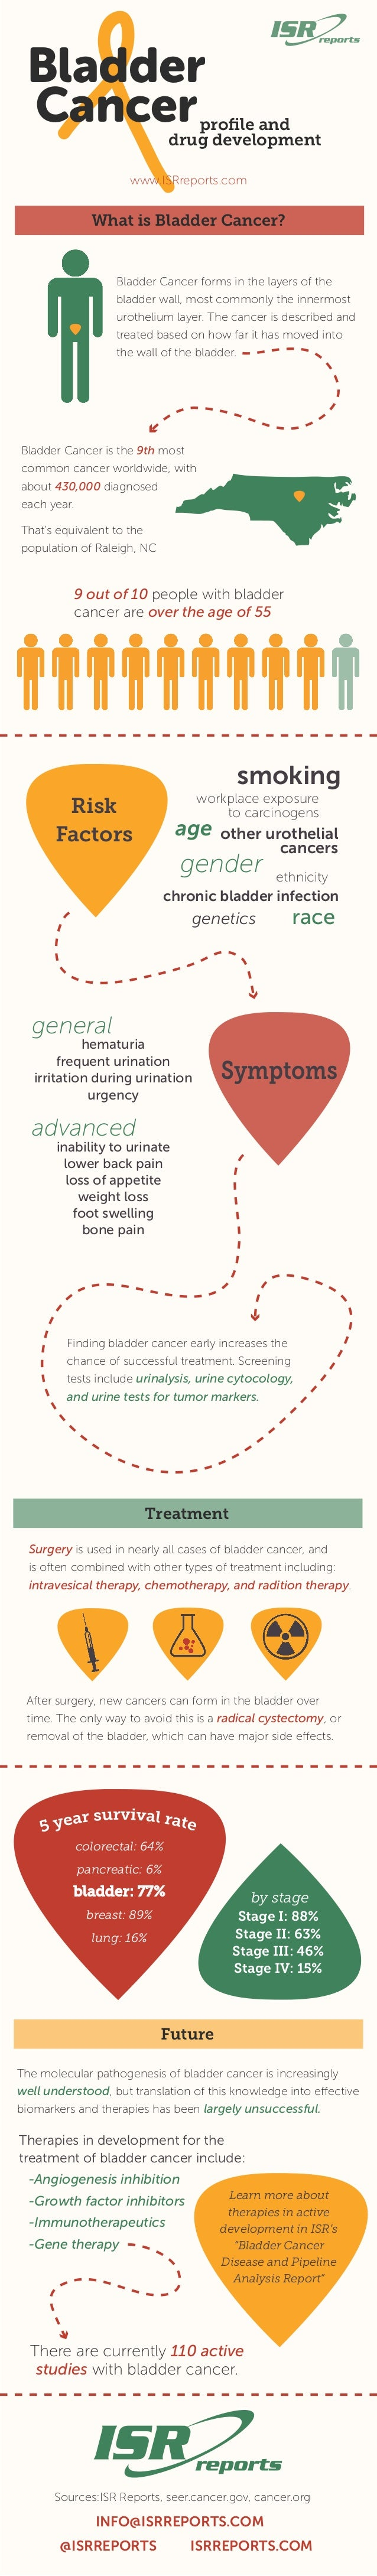 Bladder Cancerprofile and drug development www.ISRreports.com Bladder Cancer is the 9th most common cancer worldwide, with ...